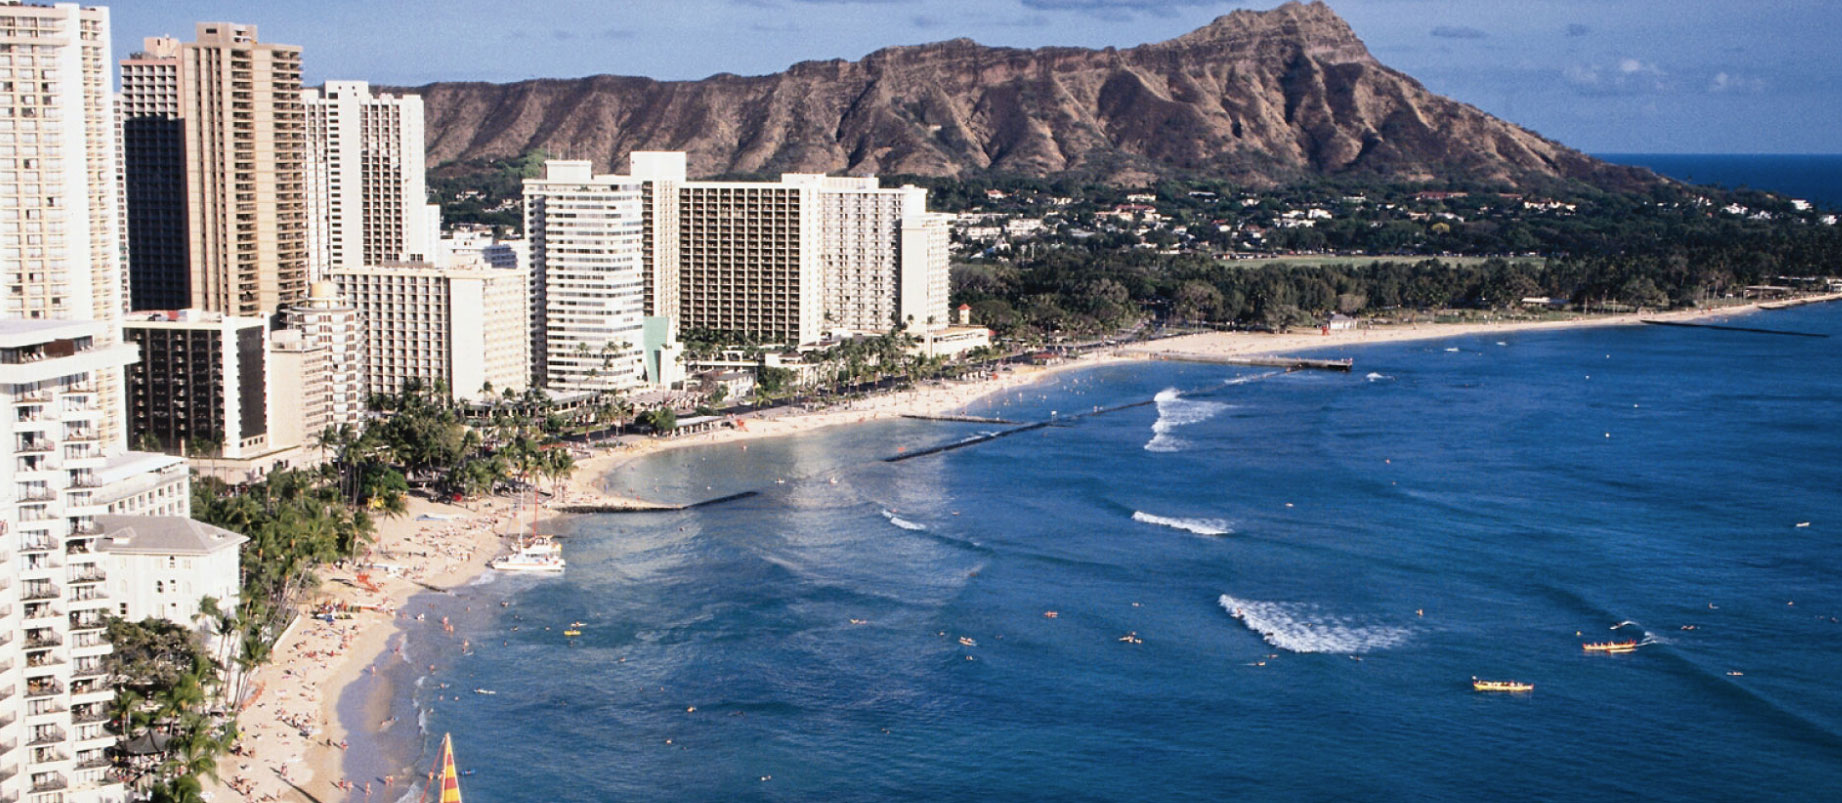 Waikiki Beach with Hotels